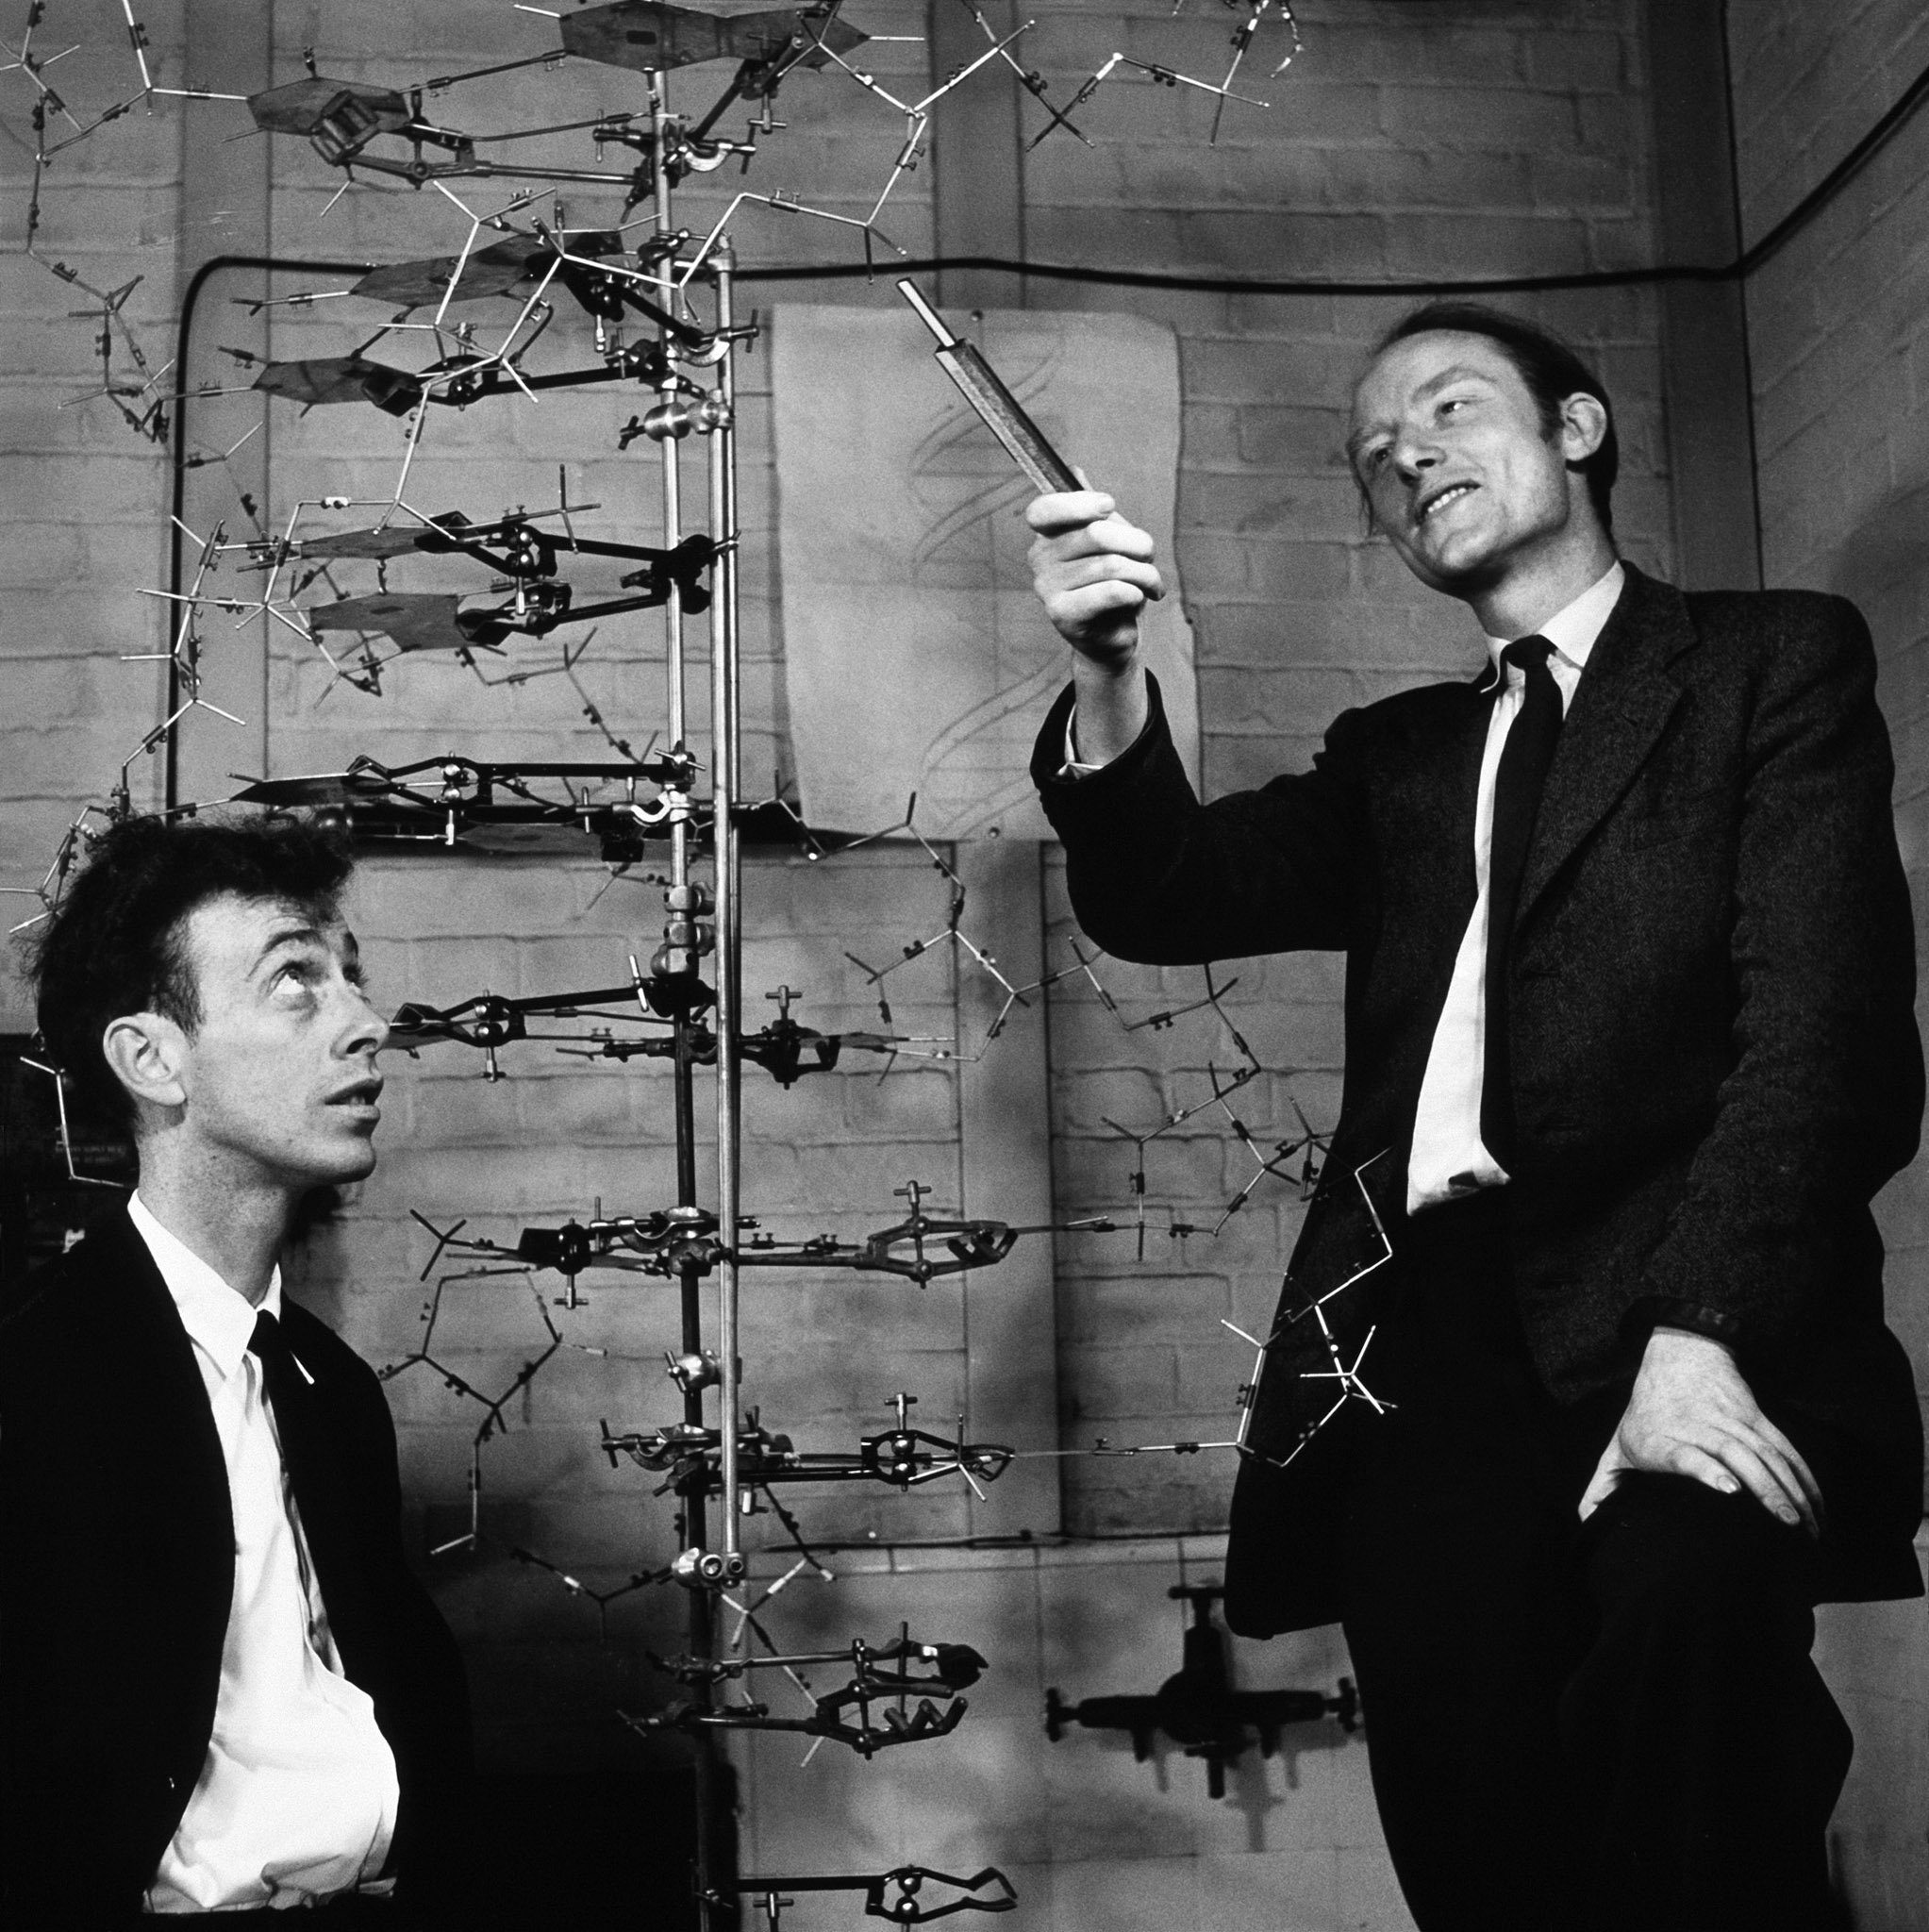 James Watson and Francis Crick with their DNA model at the Cavendish Laboratories in 1953.